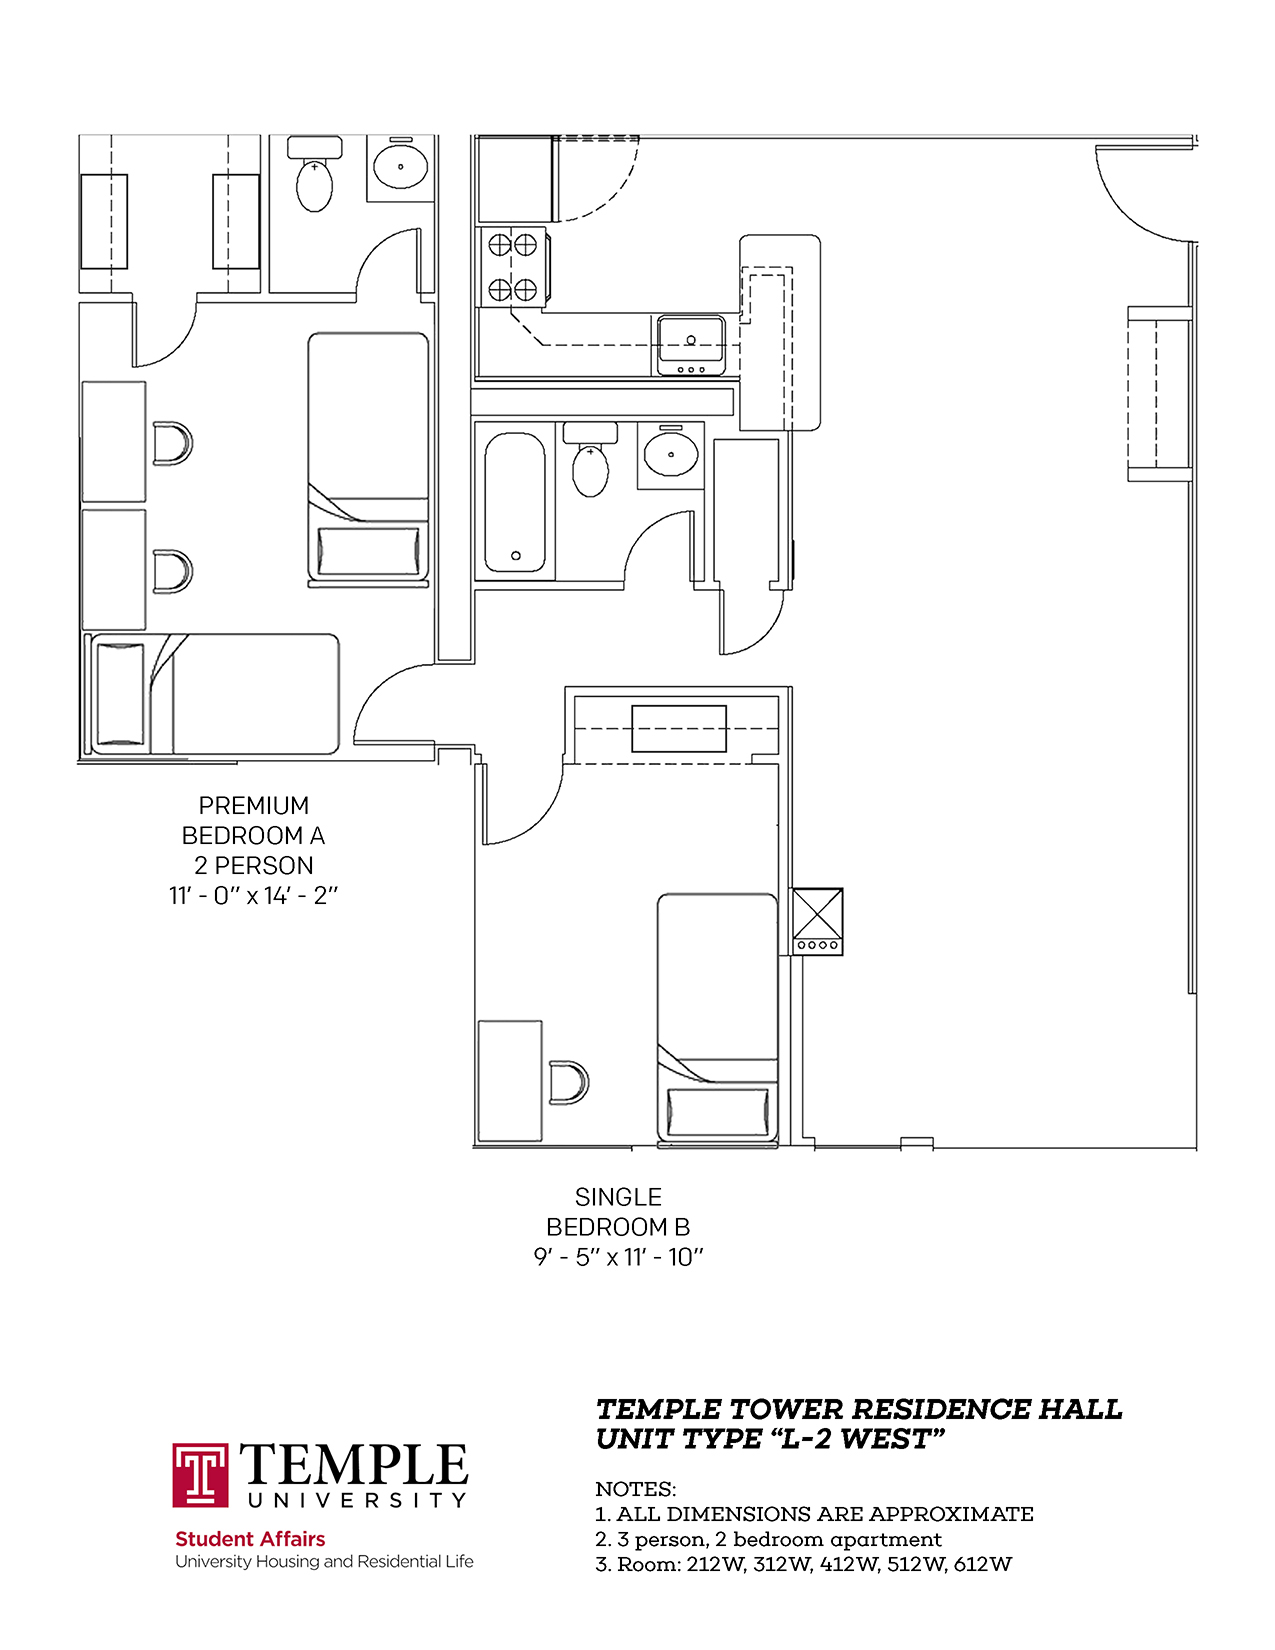 Temple Towers: Unit L2 West - 3 person, 2 bedroom Apartment